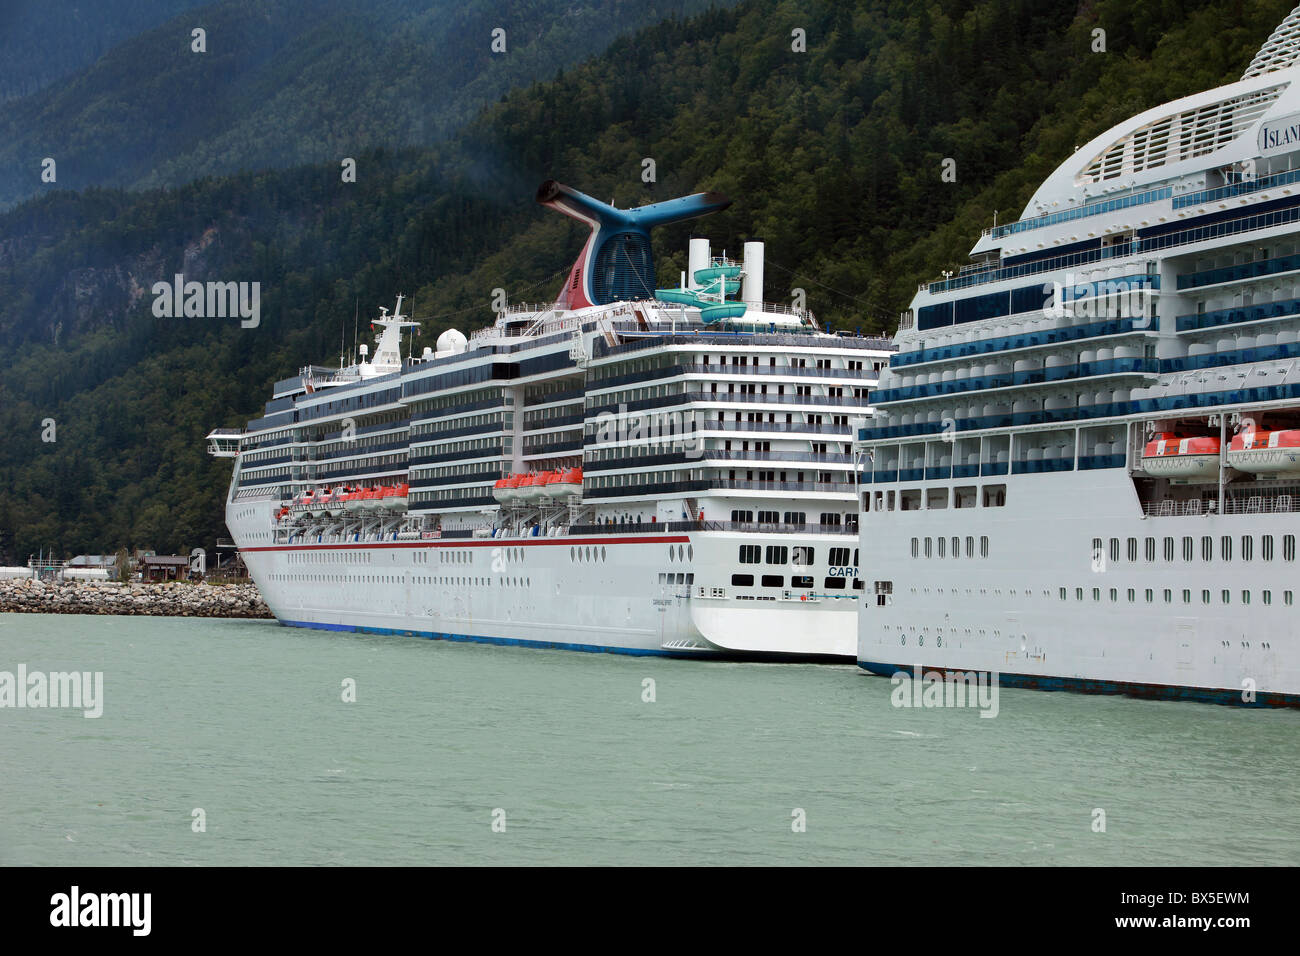 View Of Two Big Cruise Ships In Port After Traveling On Ocean In - Big cruise ship